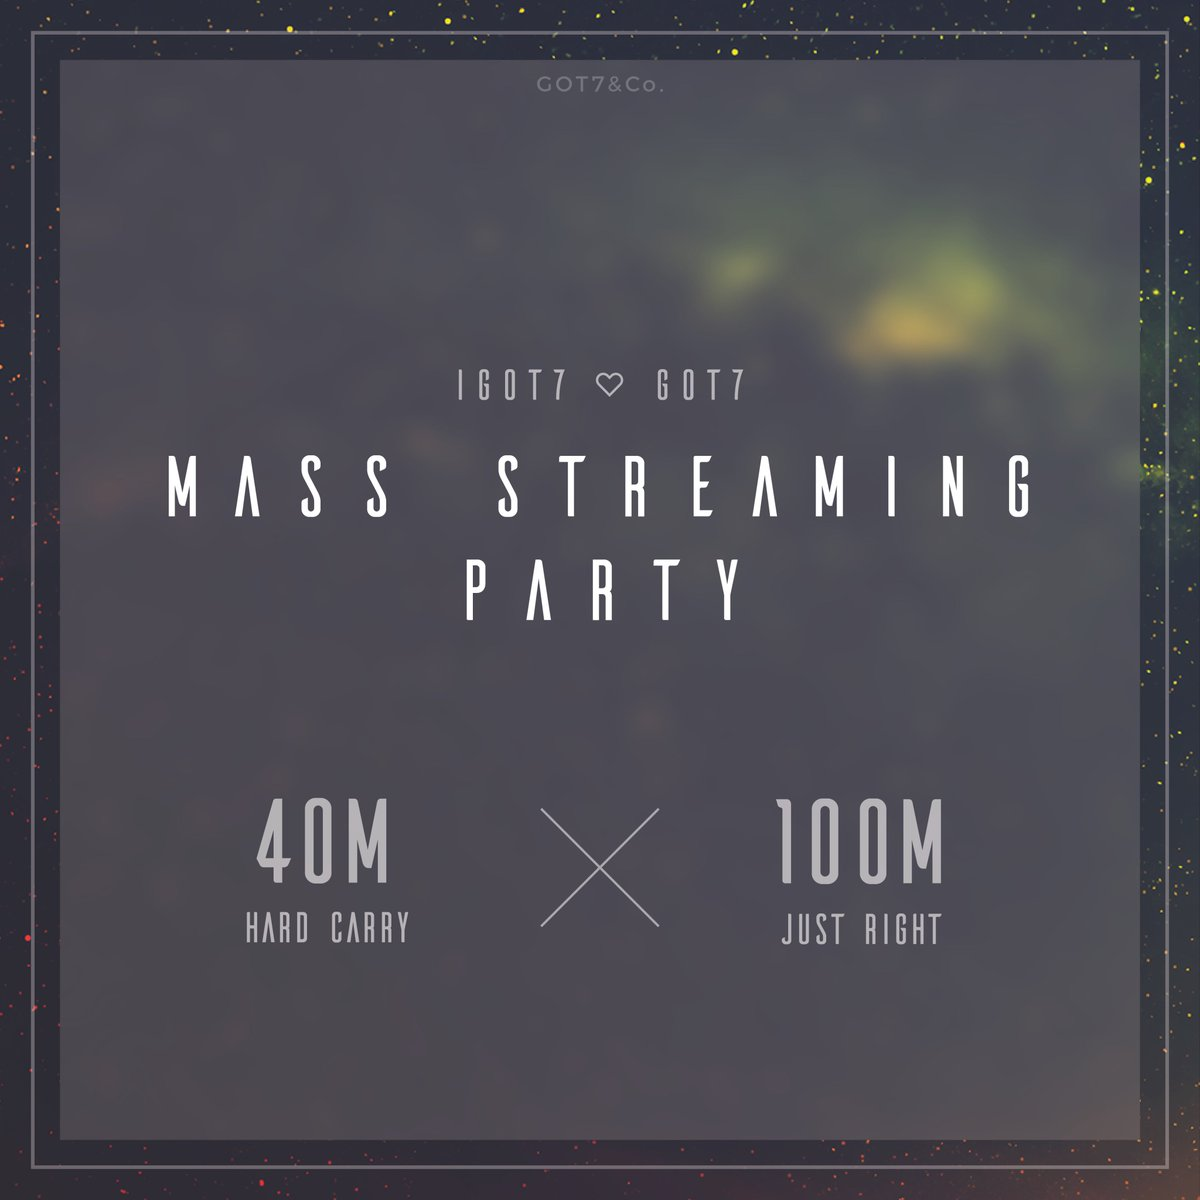 [#TeamGOT7] YouTube Mass Streaming Party Let&#39;s get Hard Carry to 40 million views &amp; Just Right to 100 million views!  https://www. youtube.com/playlist?list= PLS_u2pVuQWg-CKQMMBKAV5LHRcGlN5Zgf &nbsp; … <br>http://pic.twitter.com/LZjygUcS6E